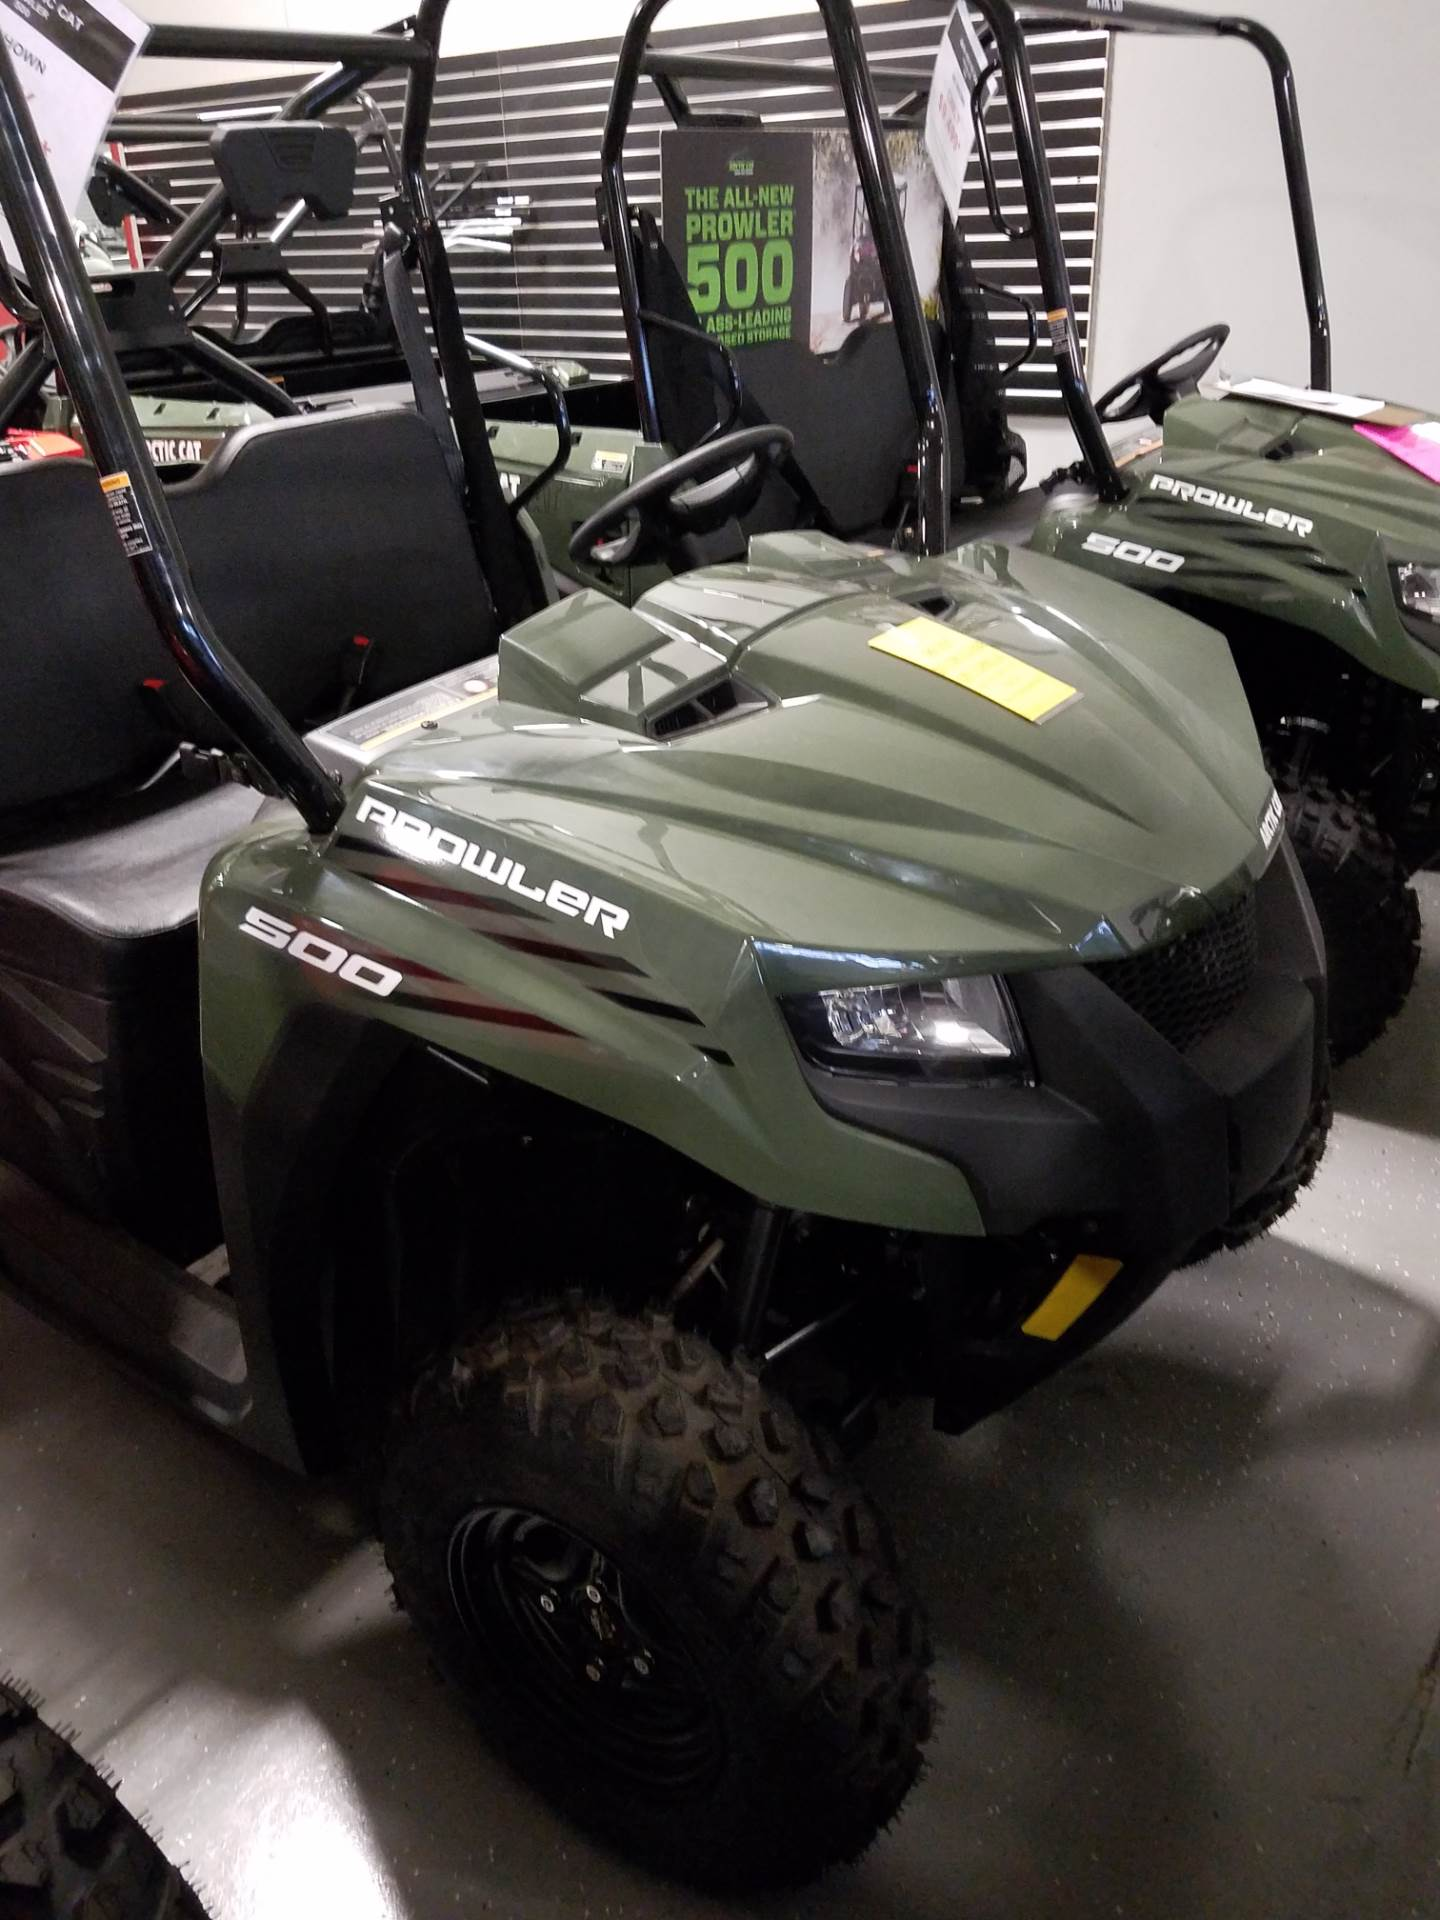 New 2016 Arctic Cat Prowler 500 Utility Vehicles In Waco Tx